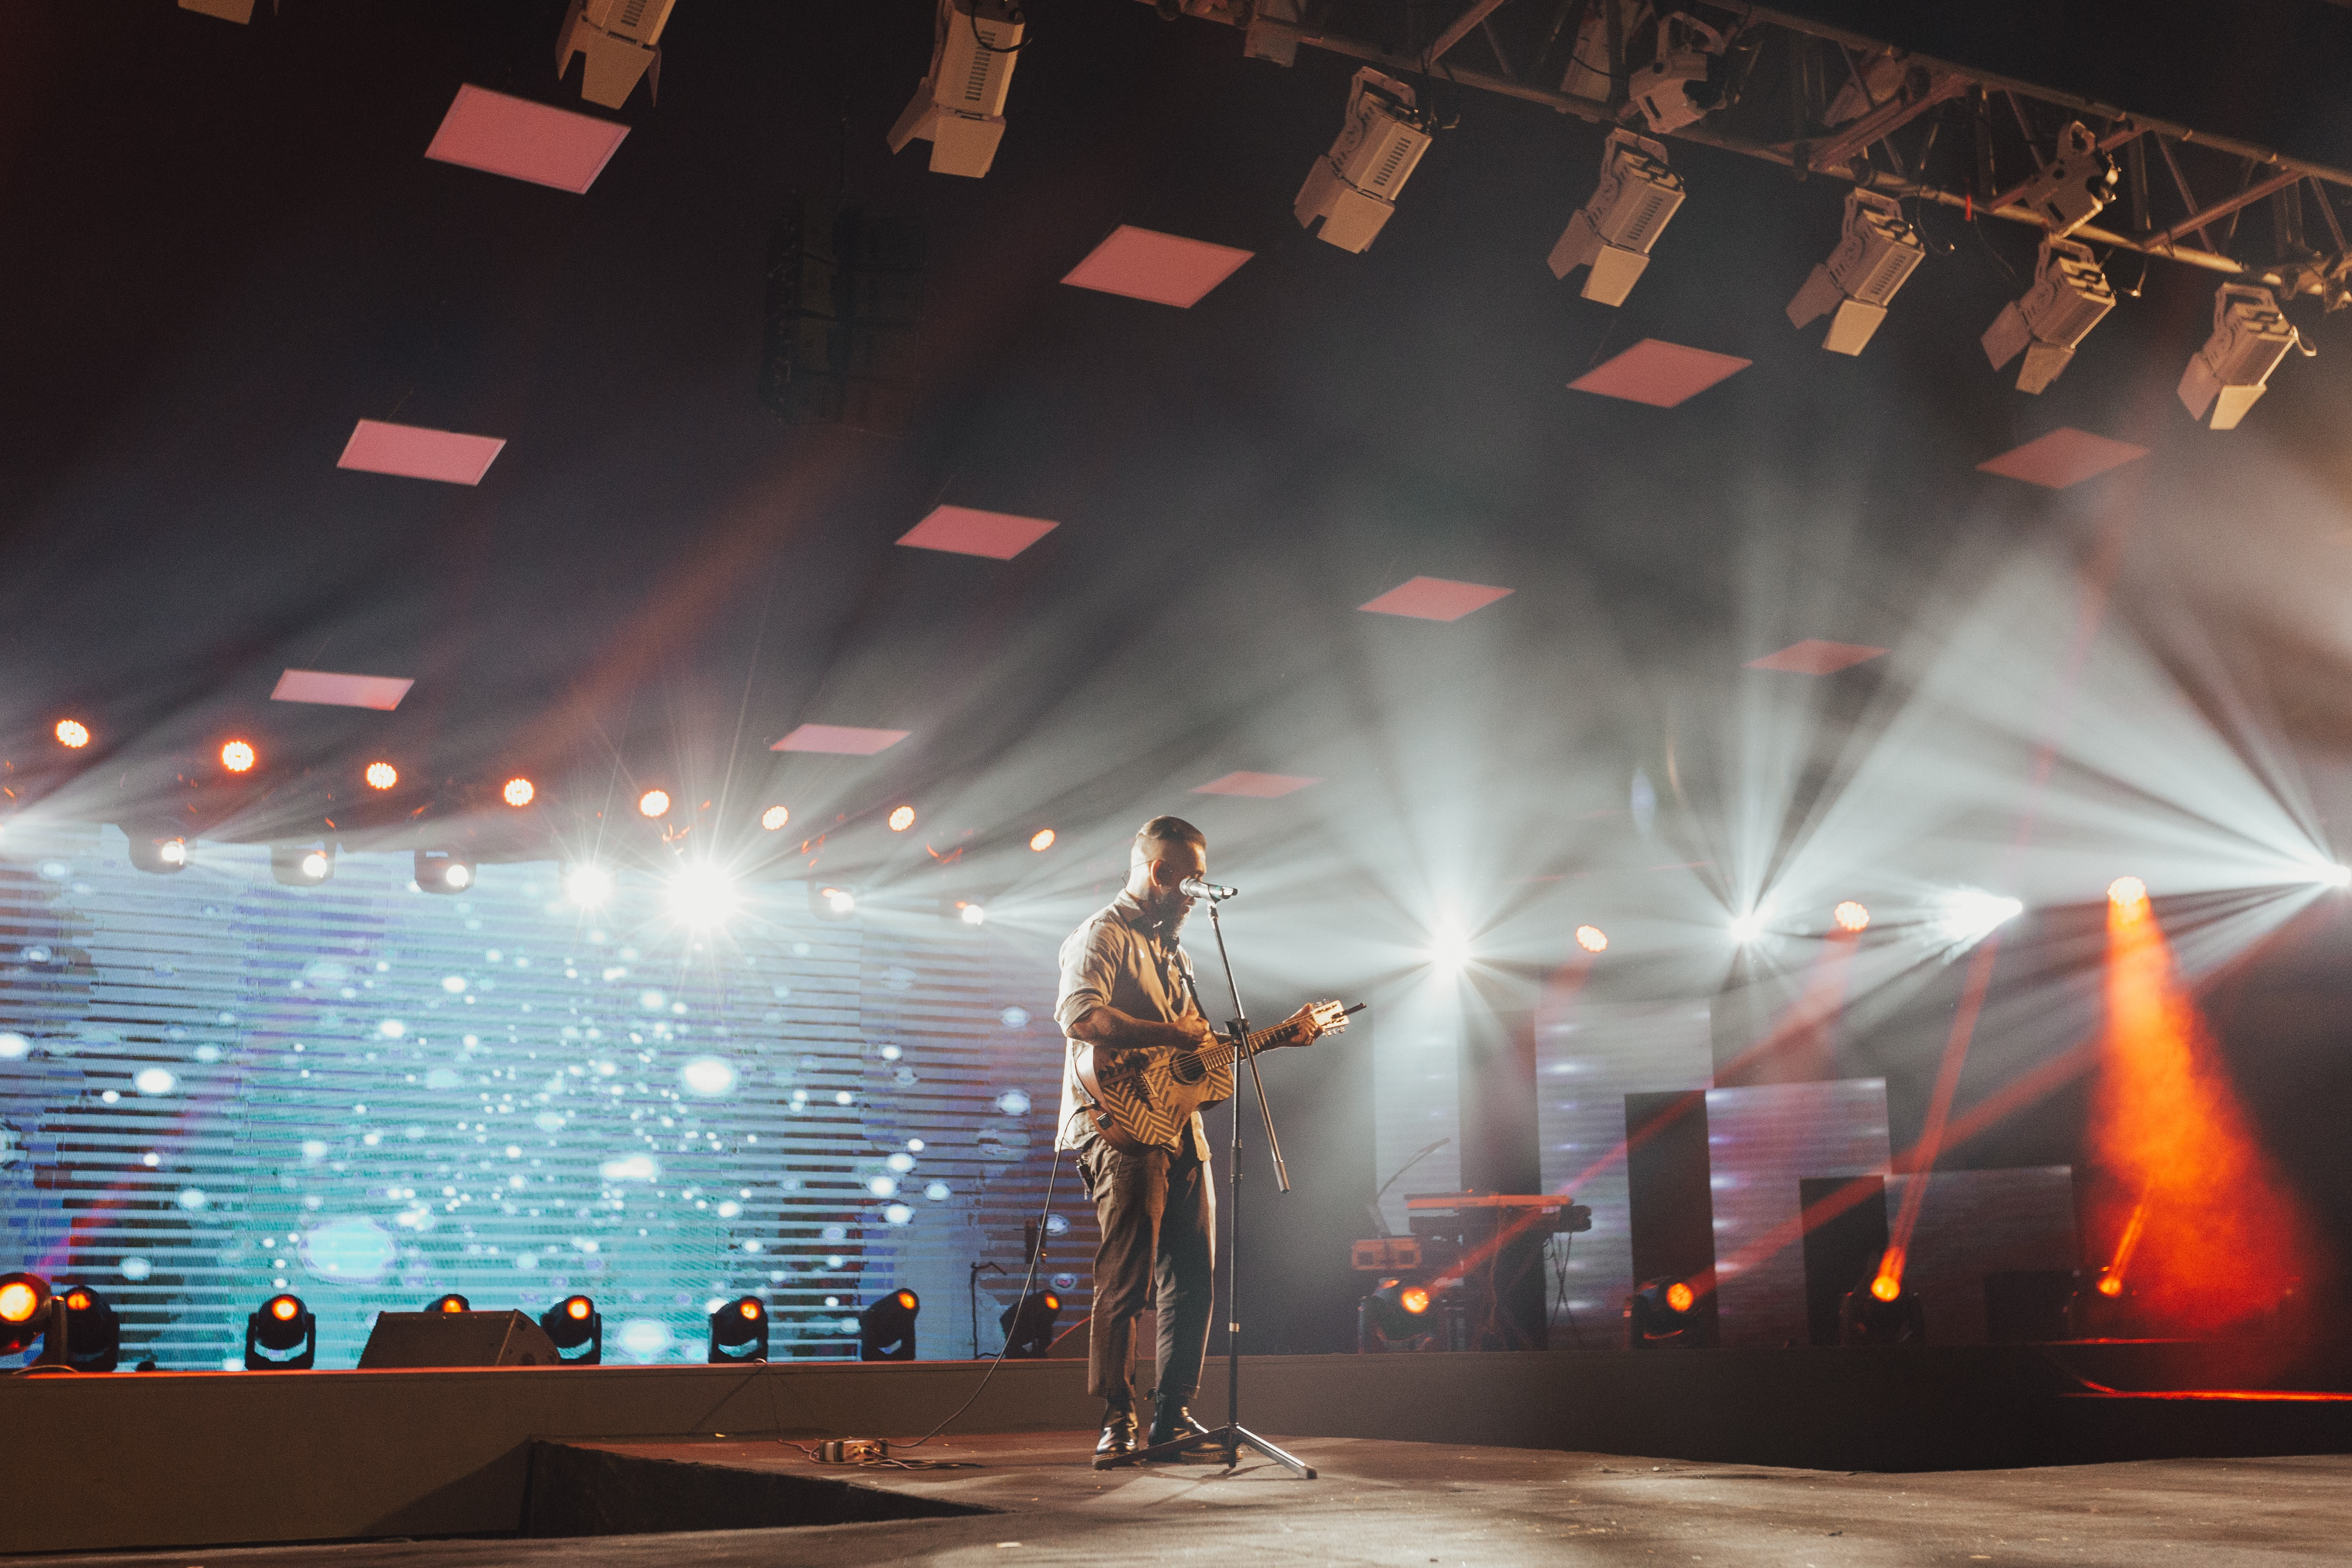 man standing on stage playing guitar